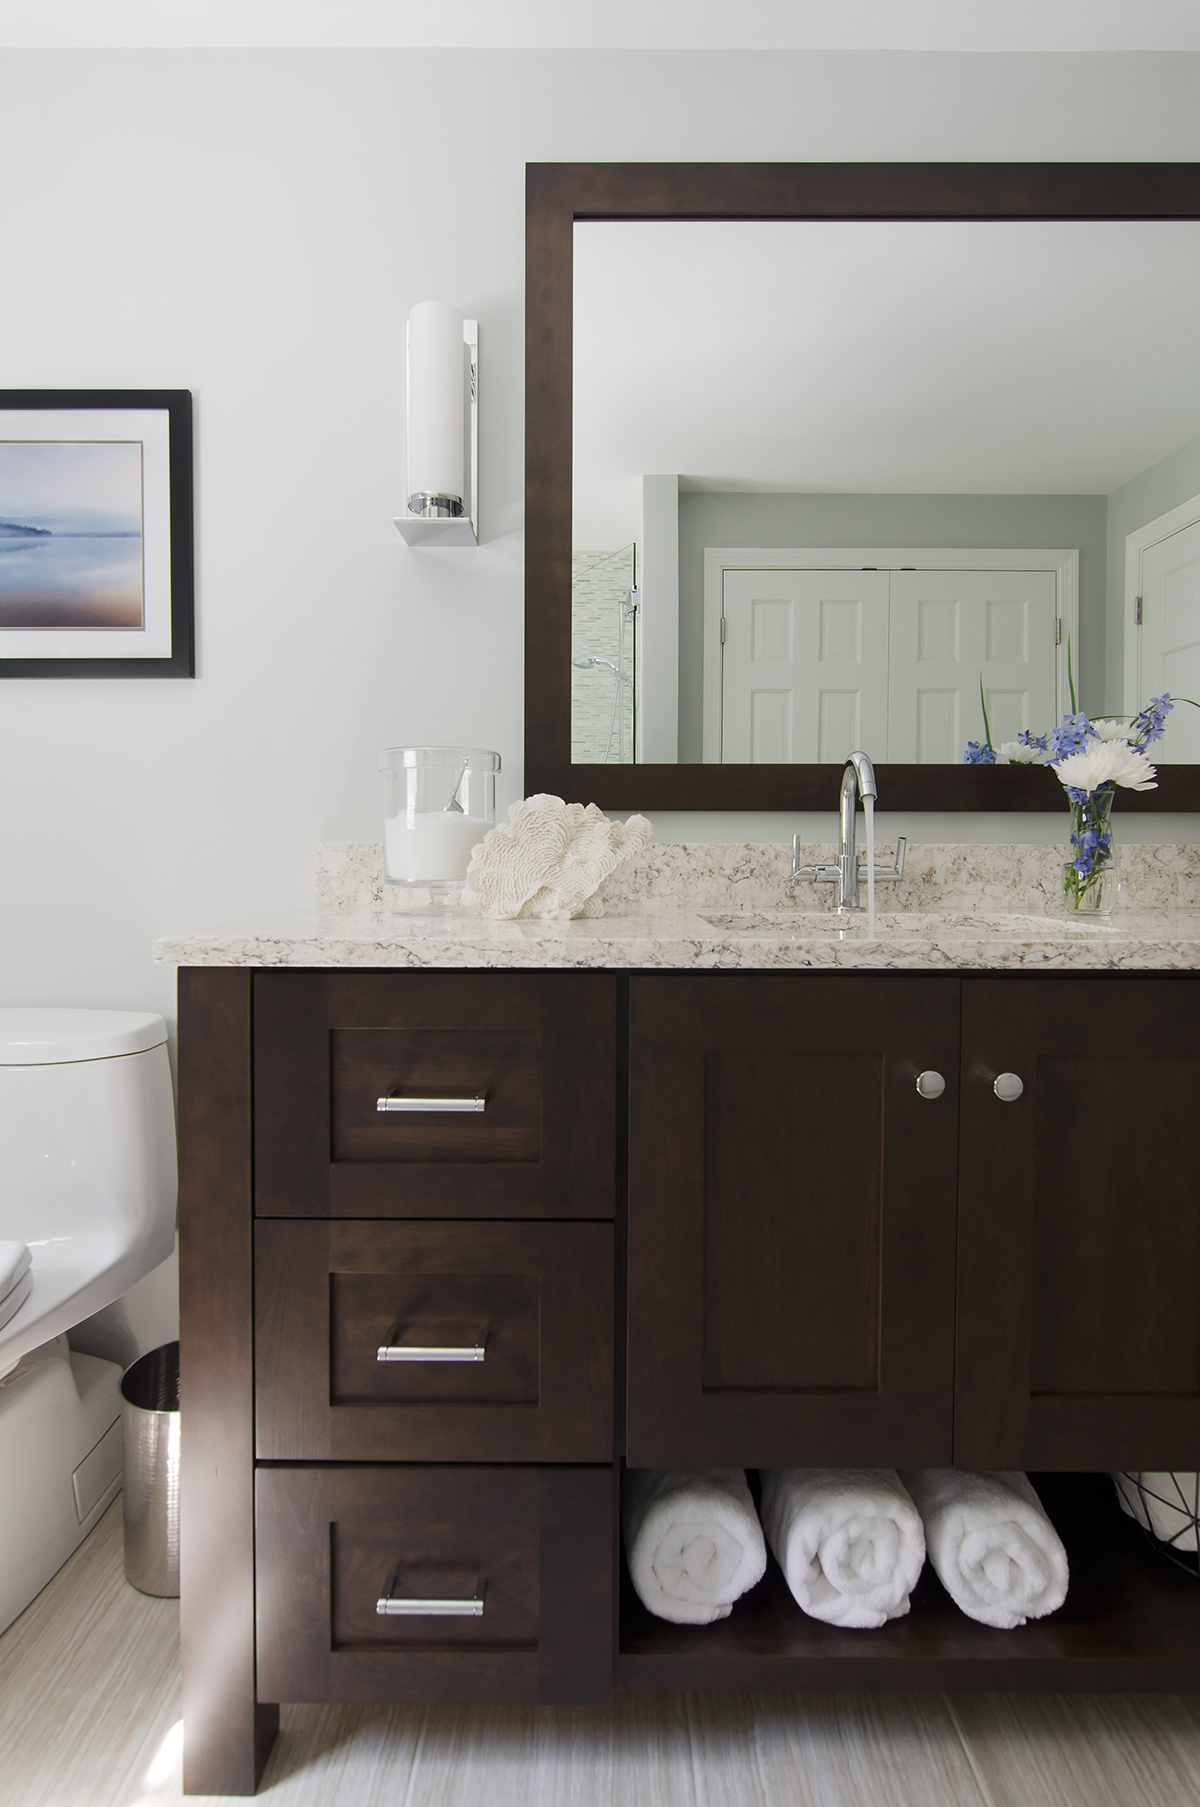 Norwell, MA bathroom interior design by Susan Curtis Interiors